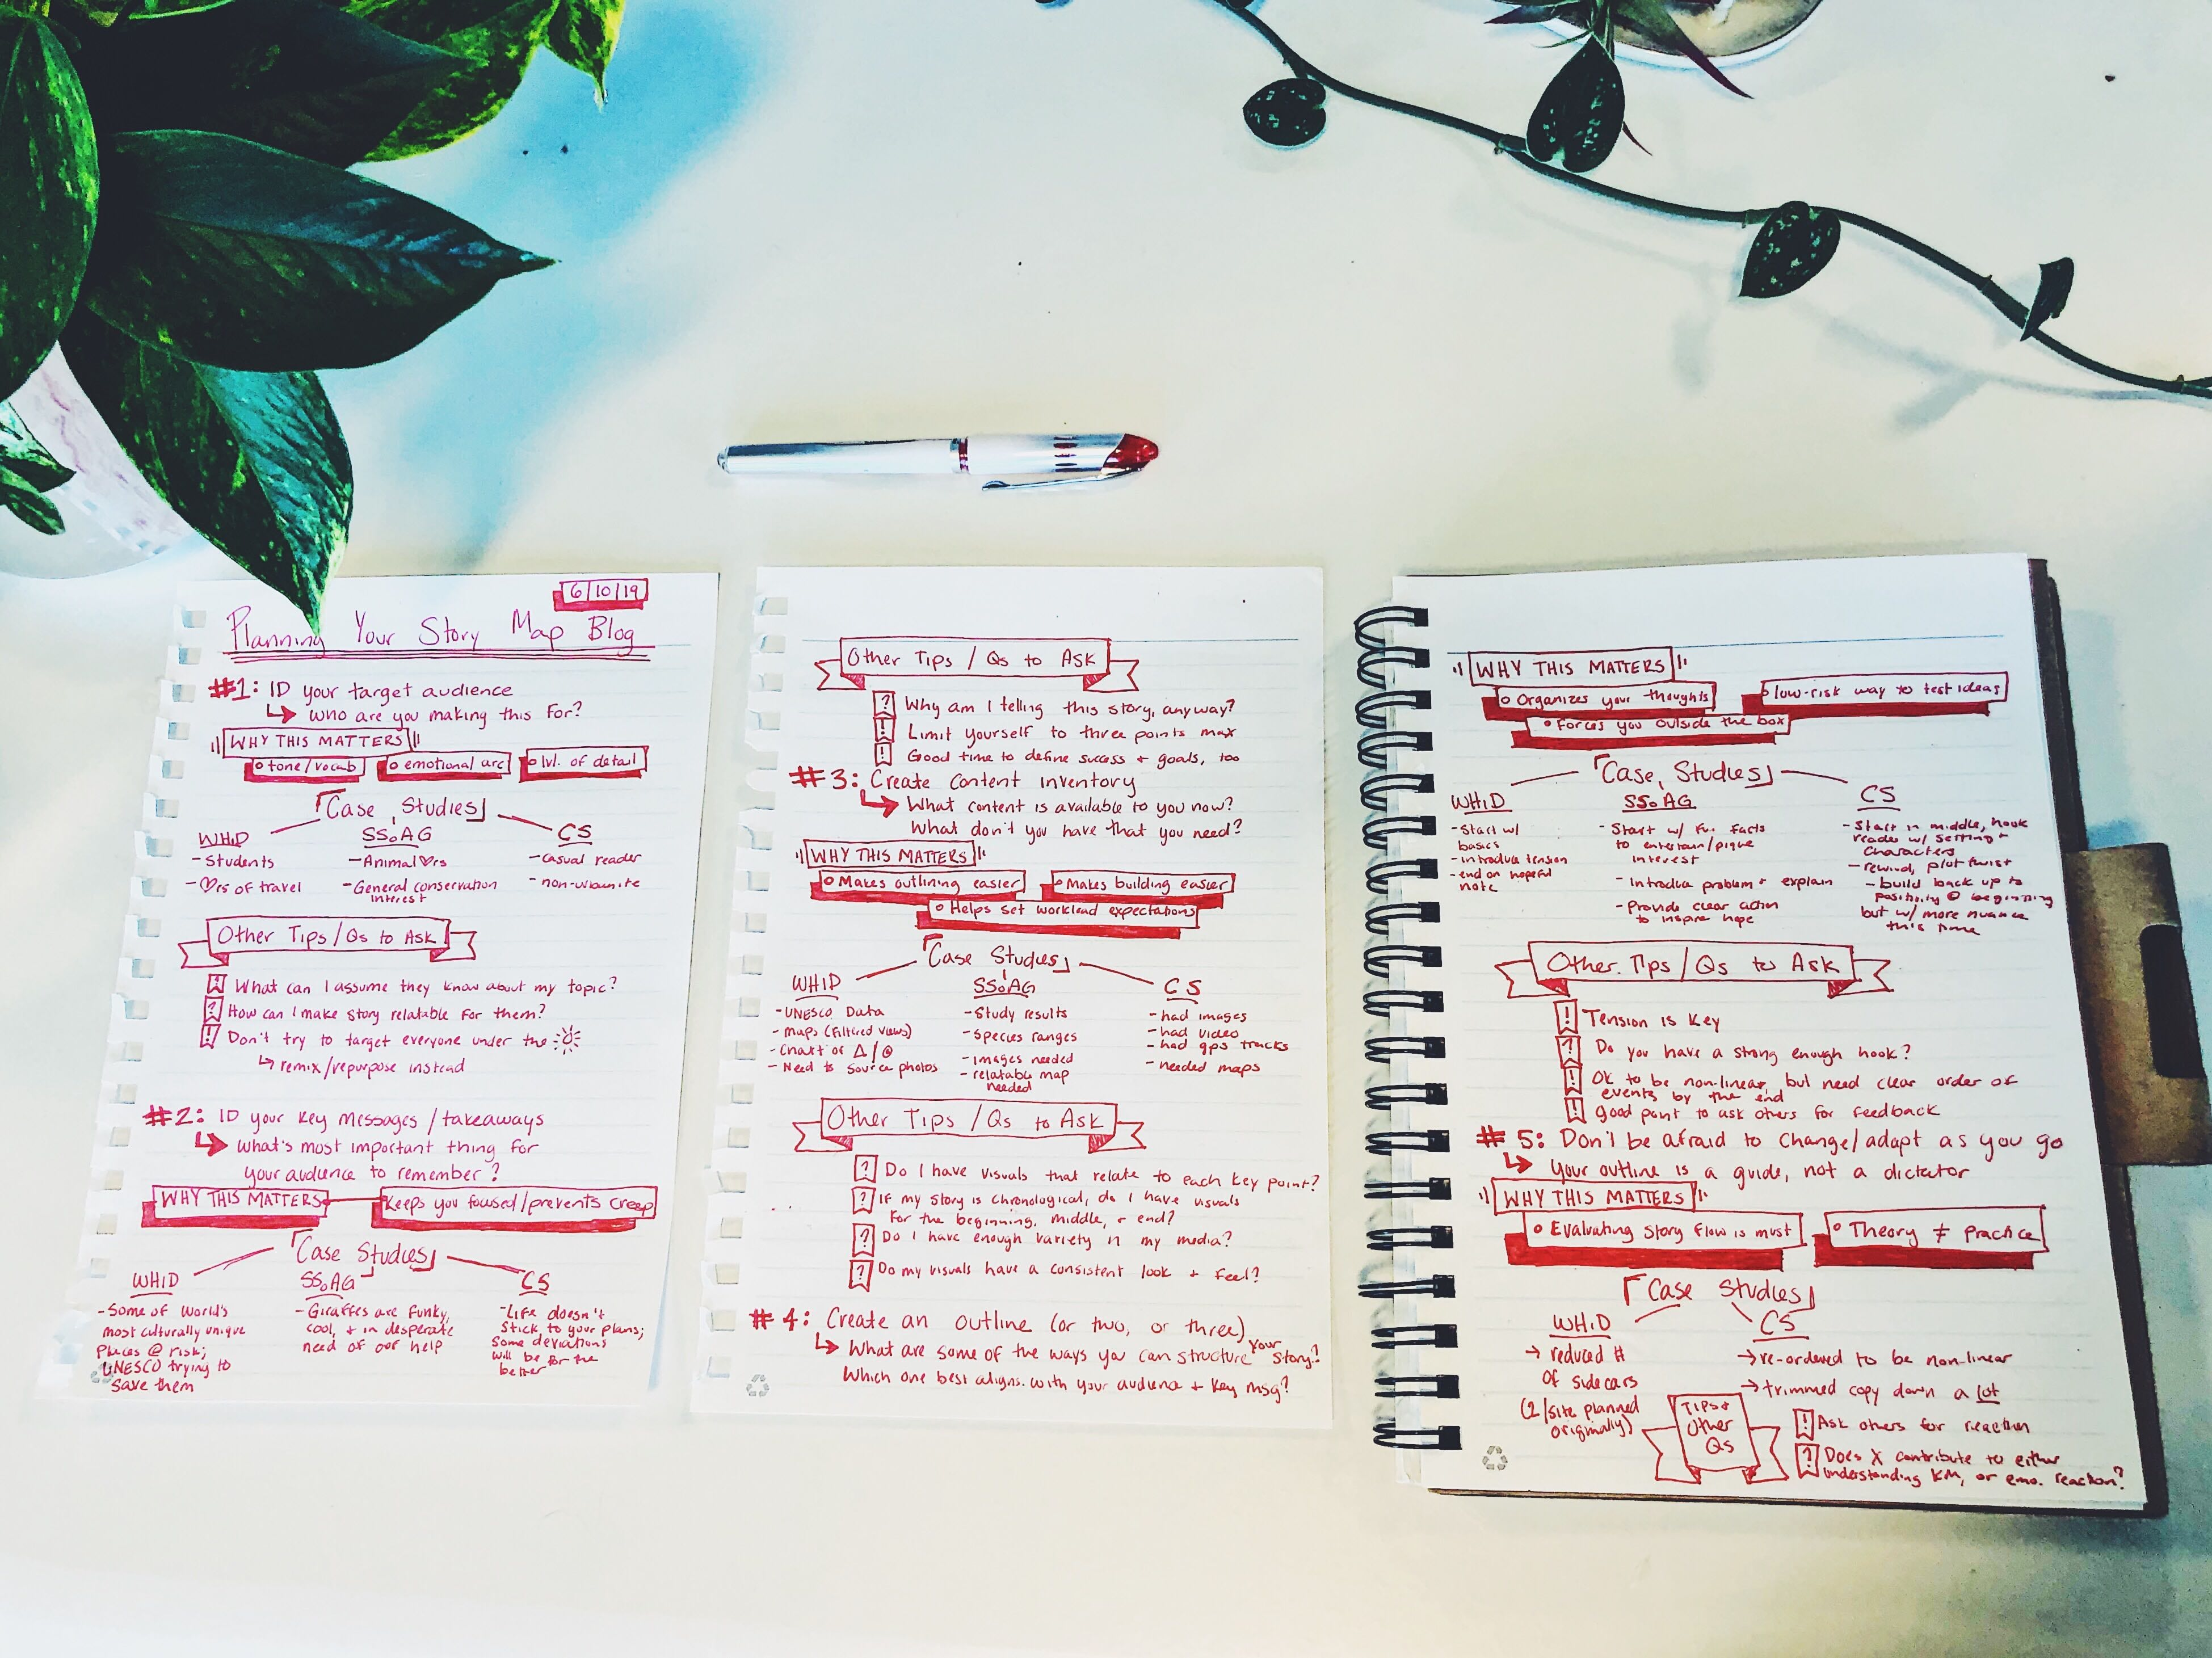 My outline for this blog: Three pieces of notebook paper with headings for each blog section and the repeated subsection within each, plus bullet point of what I wanted to say for each part